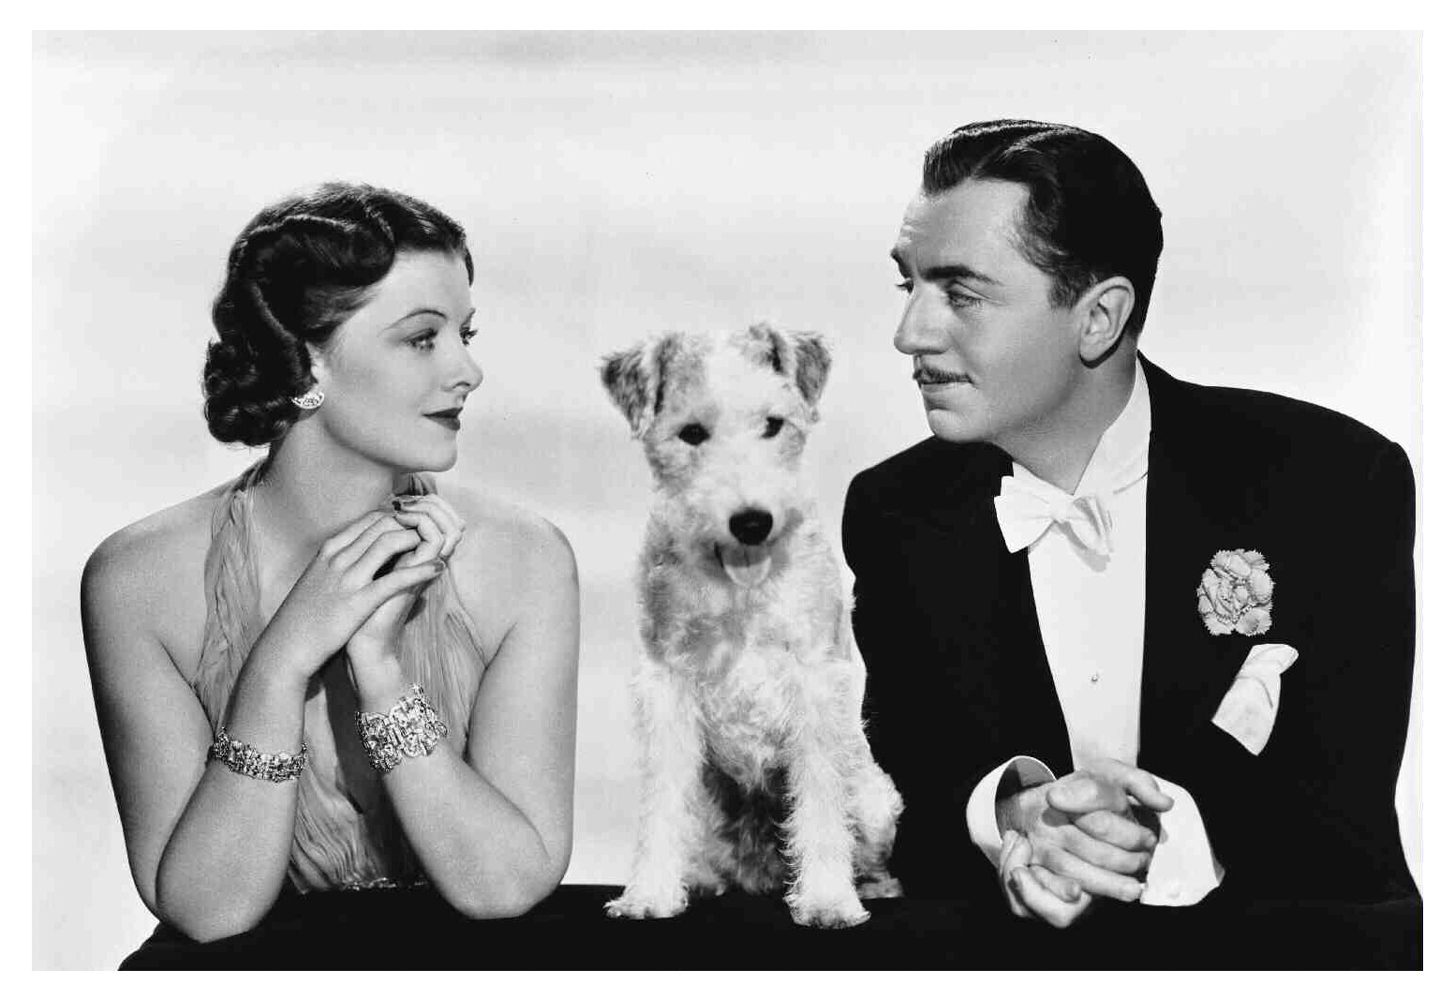 after the thin man 1936 publicity still photo 959-x